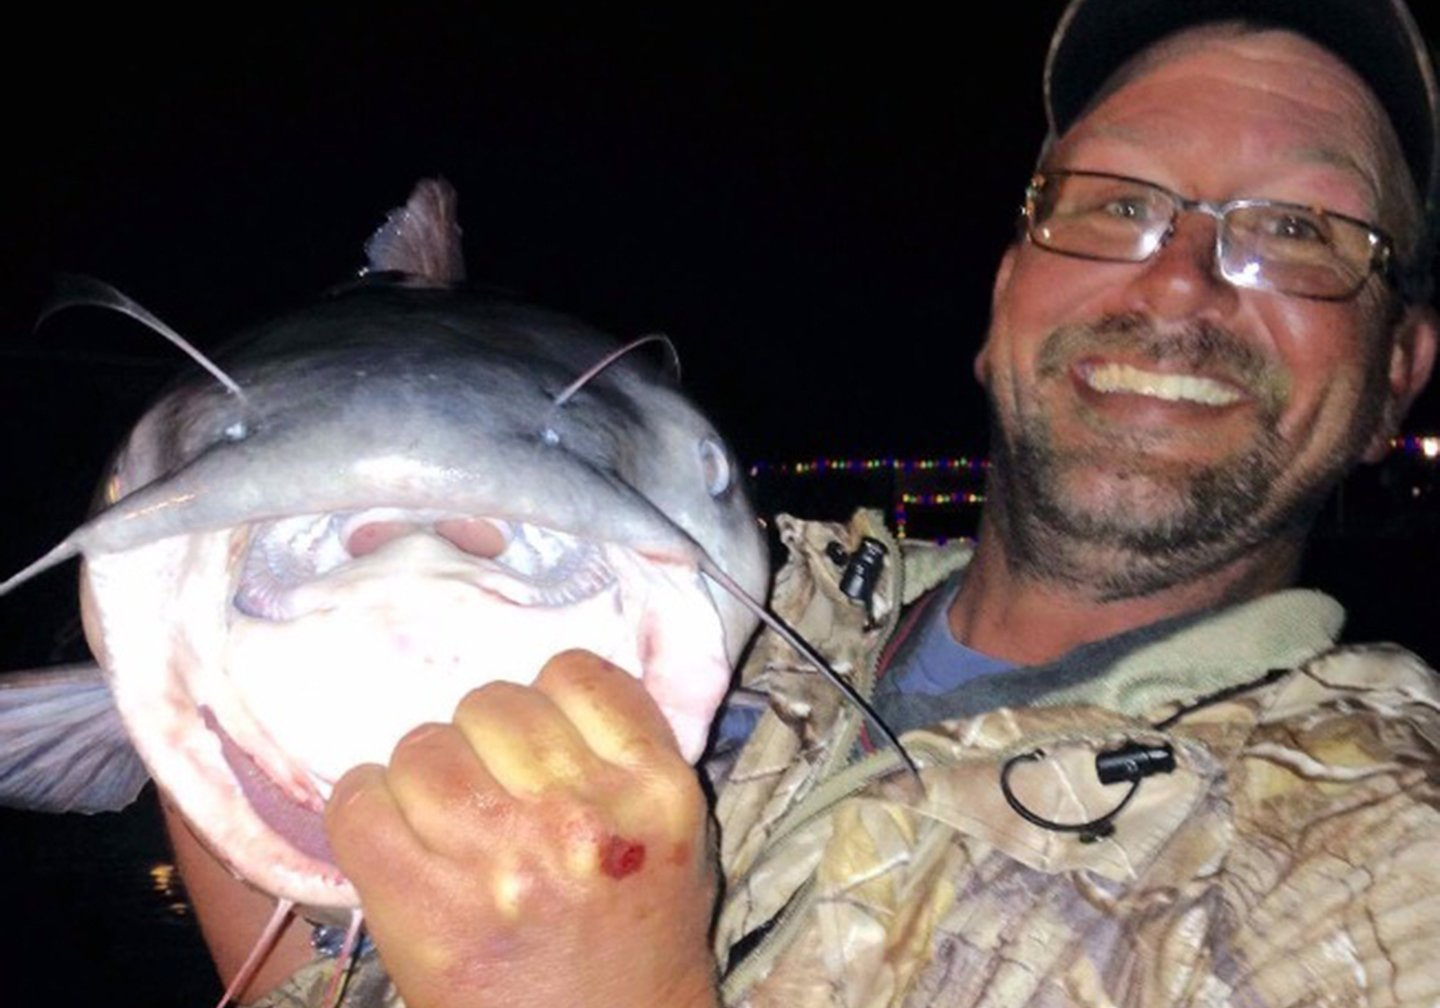 A smiling man wearing glasses holding a large Catfish with its mouth open.